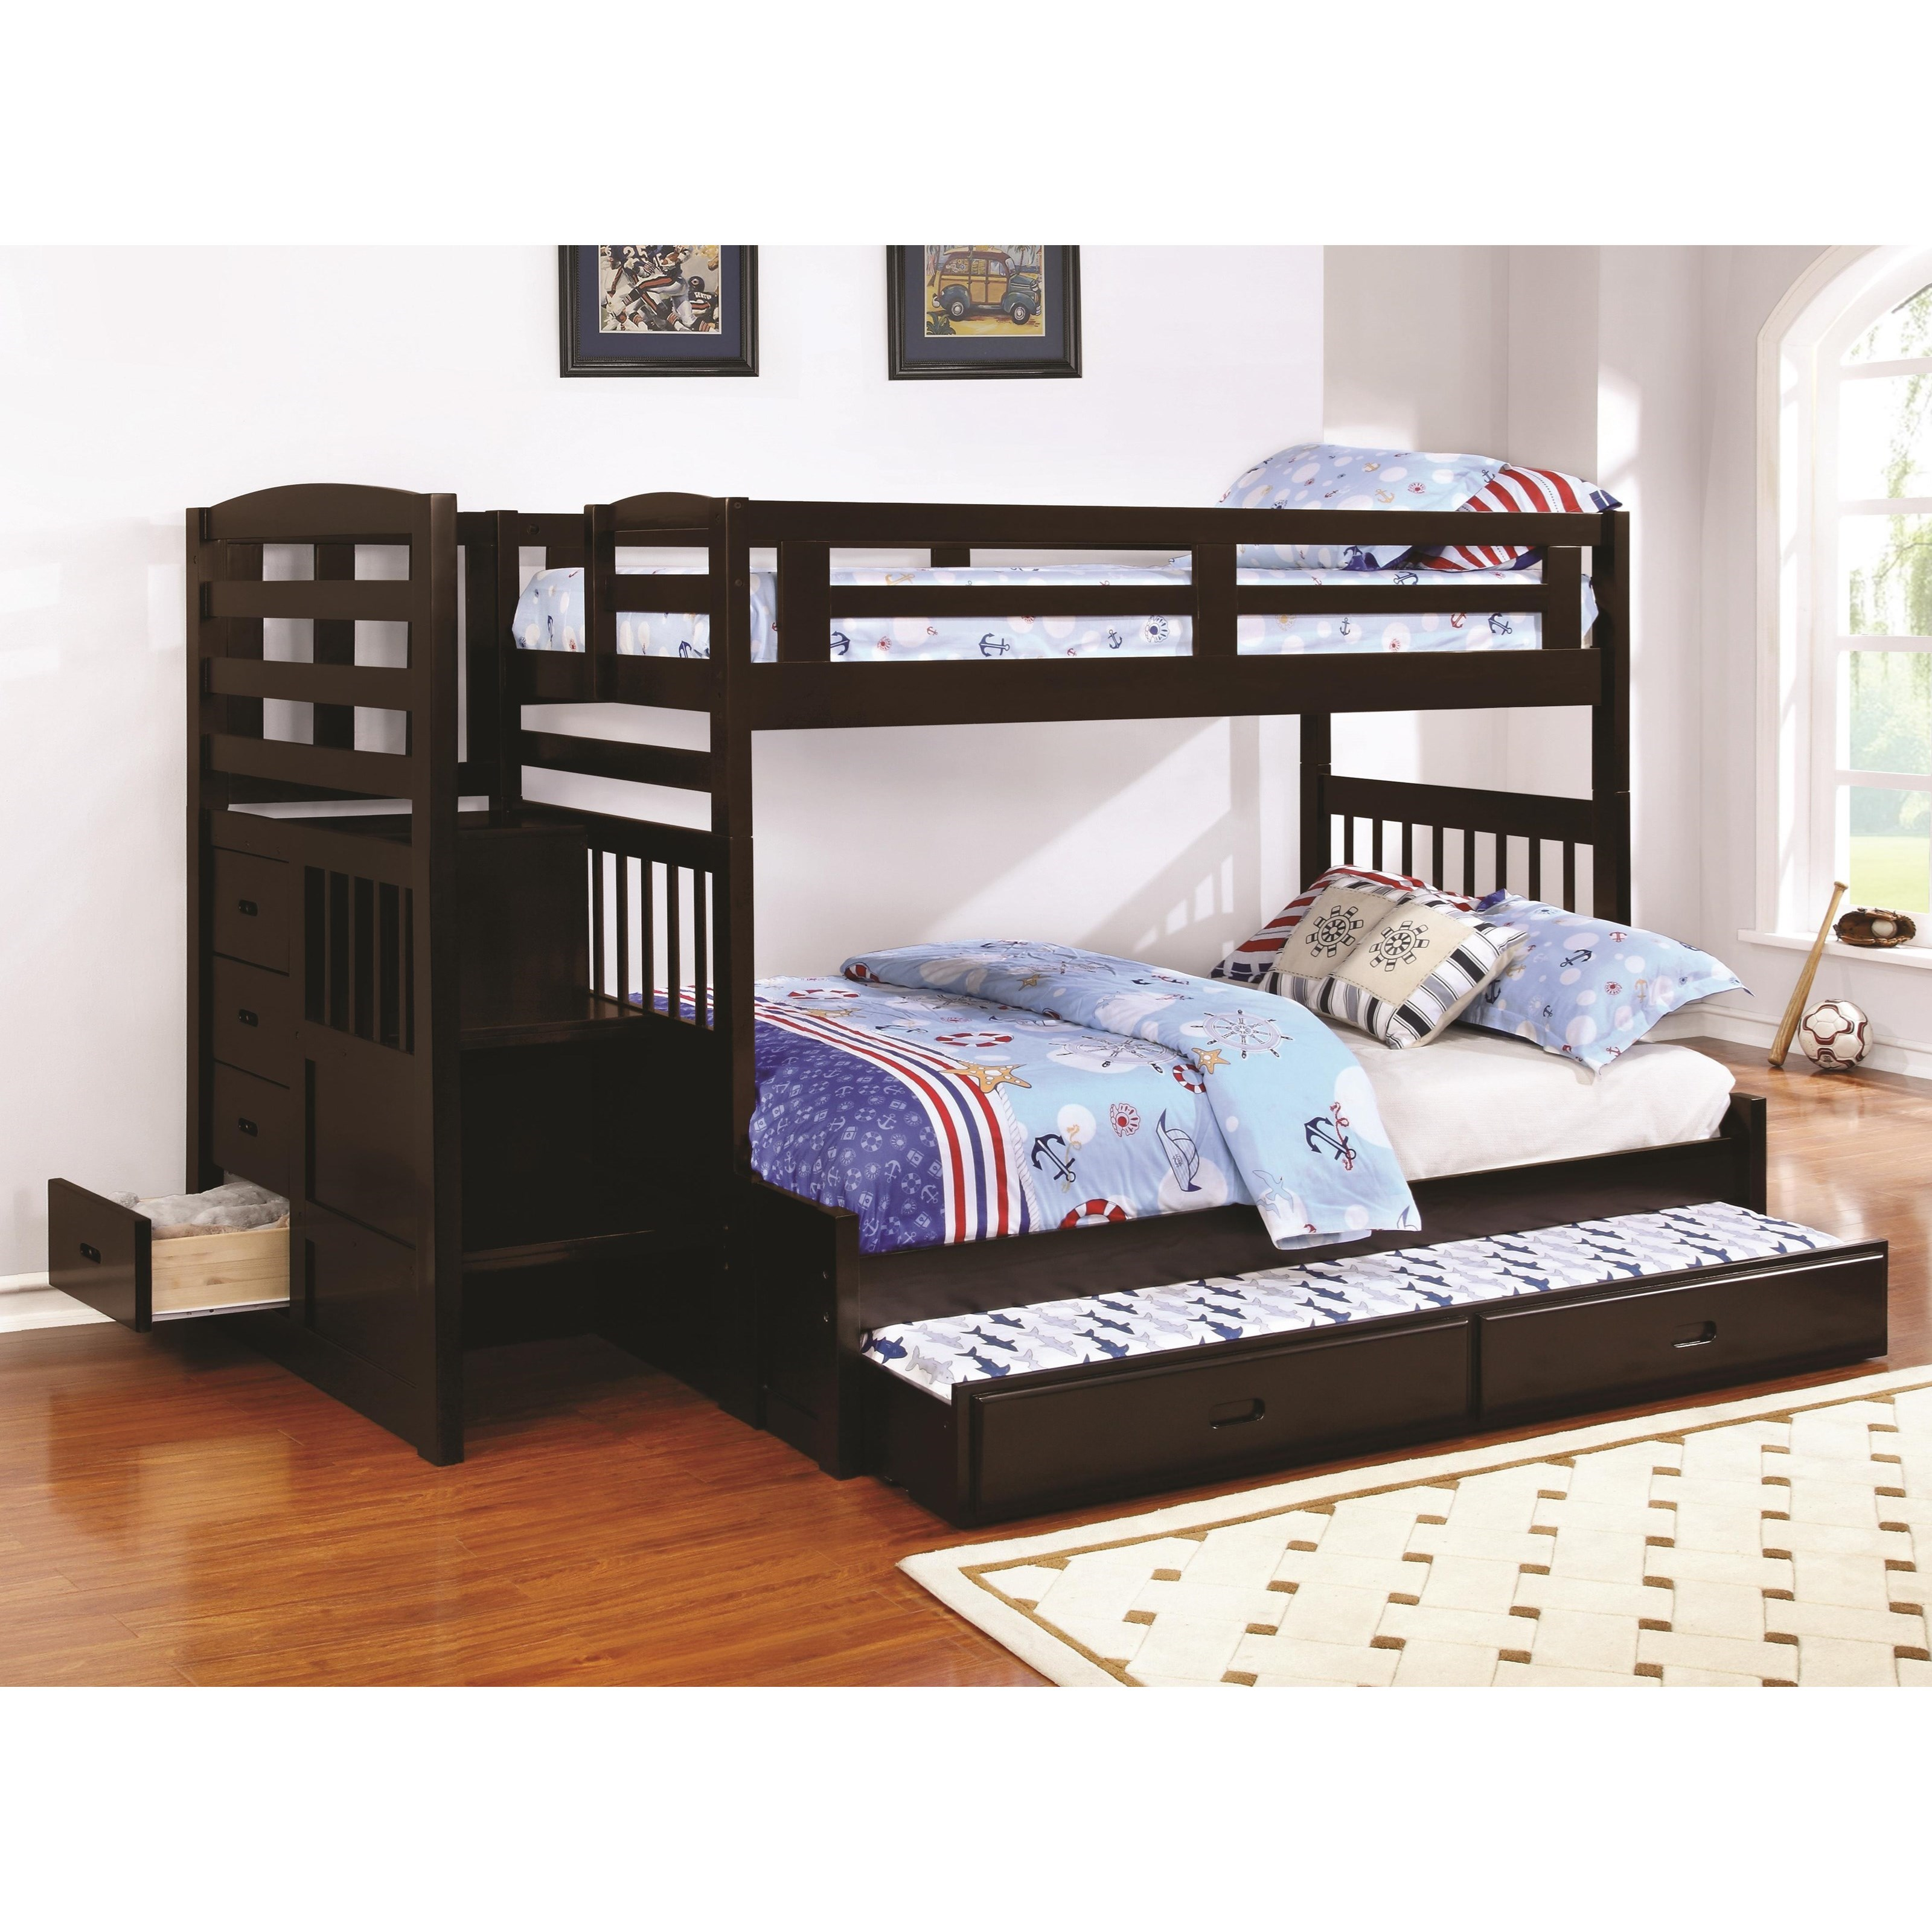 Dublin Twin over Full Bunk Bed with Trundle by Coaster at Northeast Factory Direct